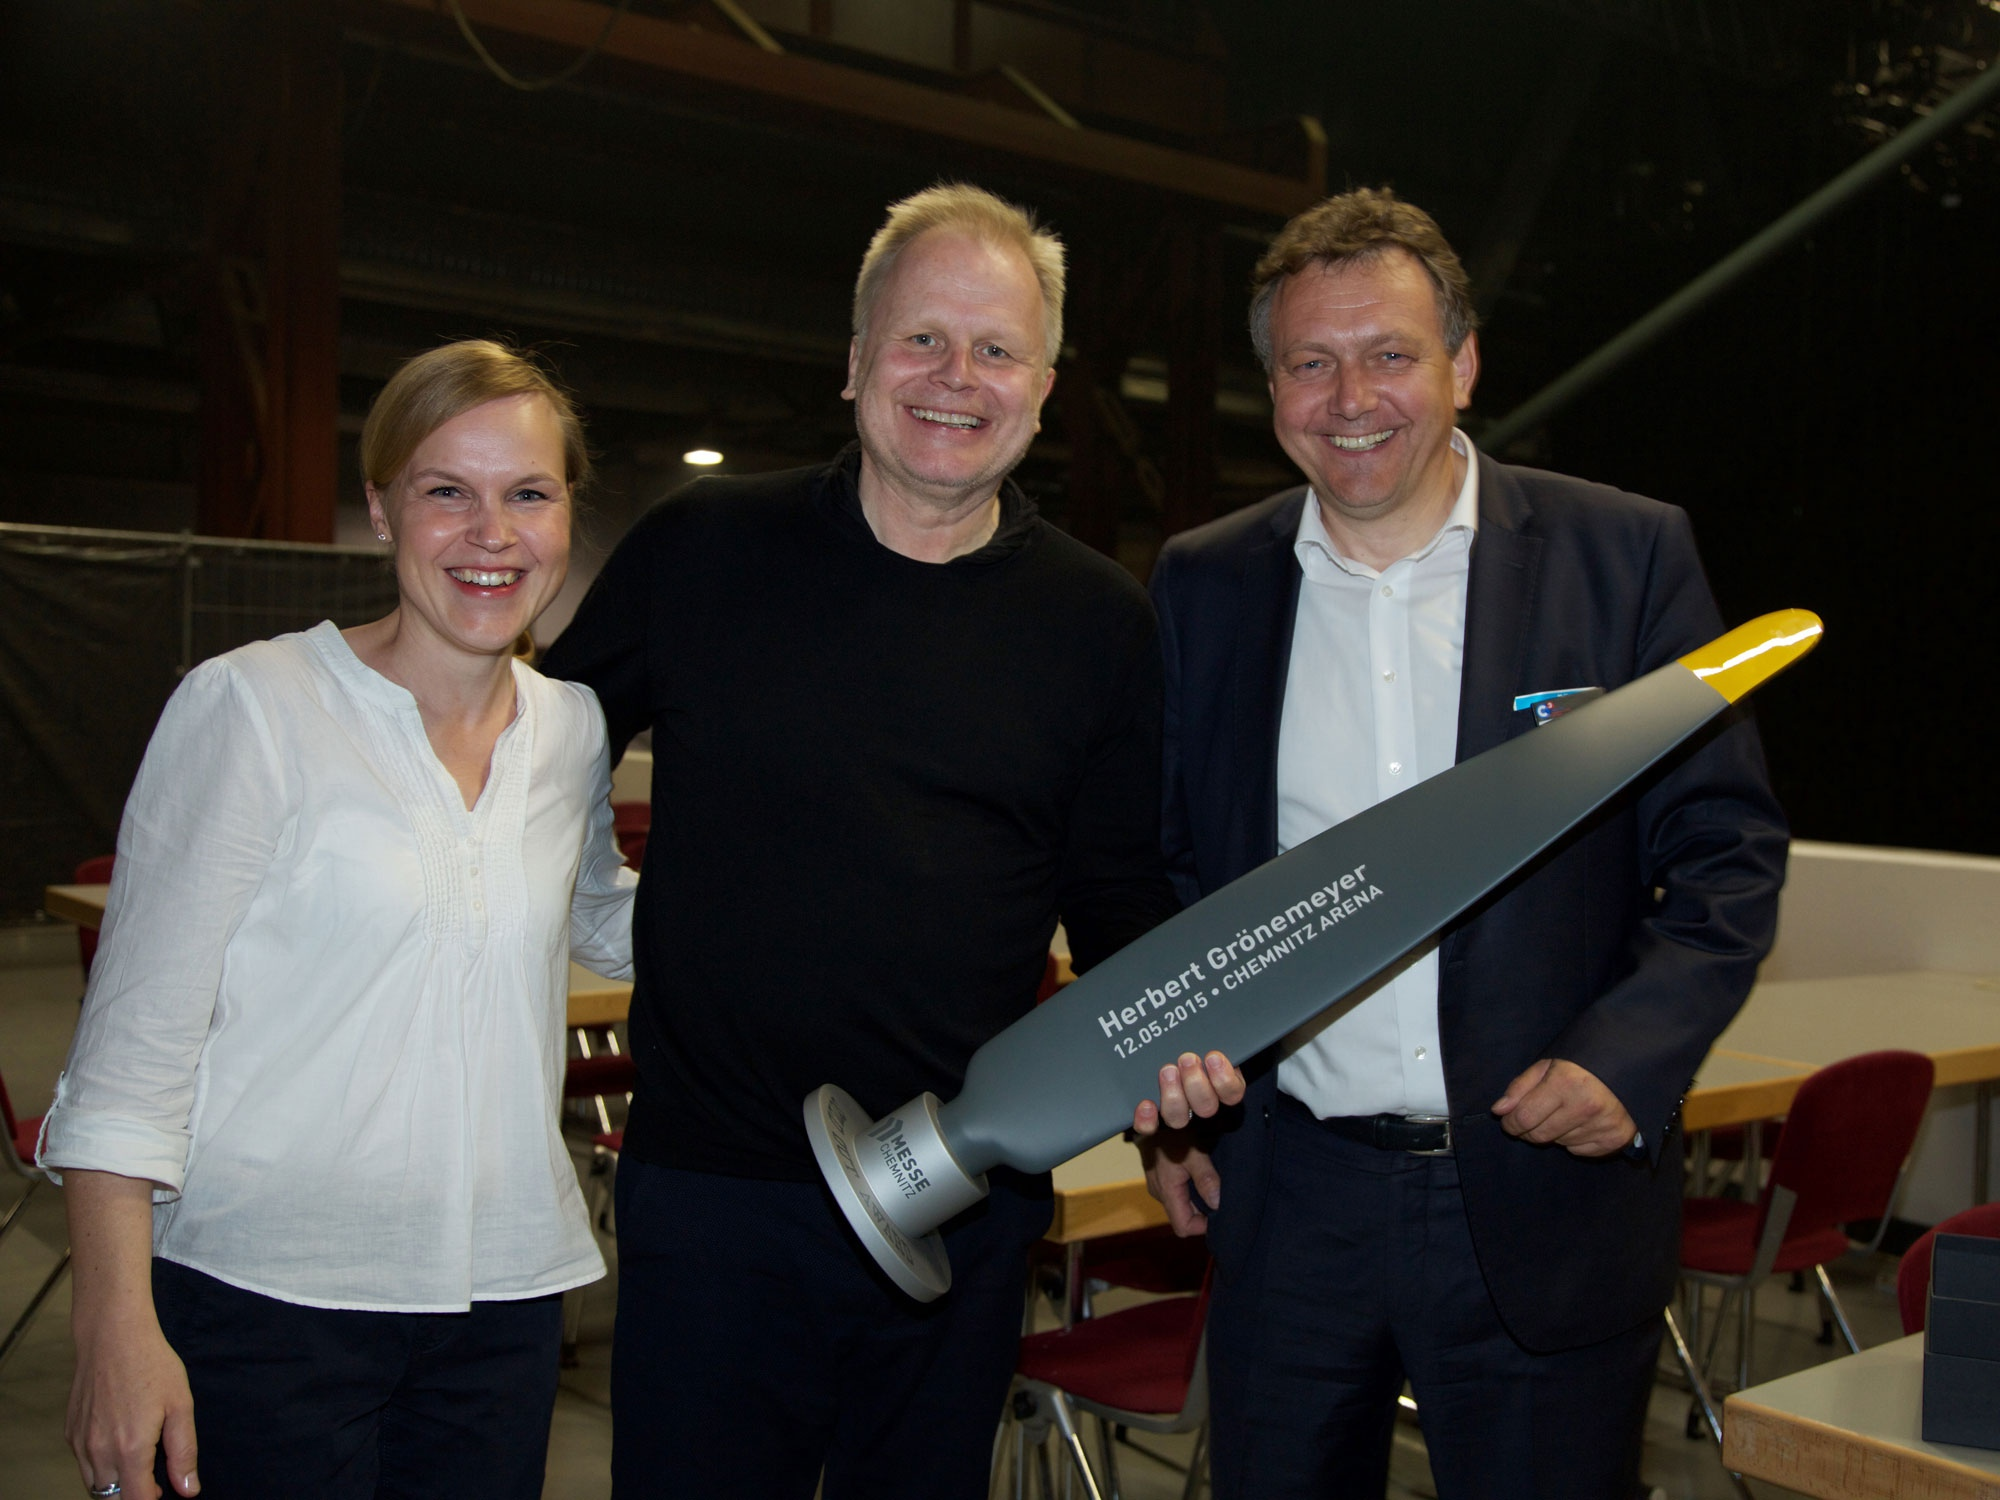 groenemeyer_sold-out-award_messe-chemnitz